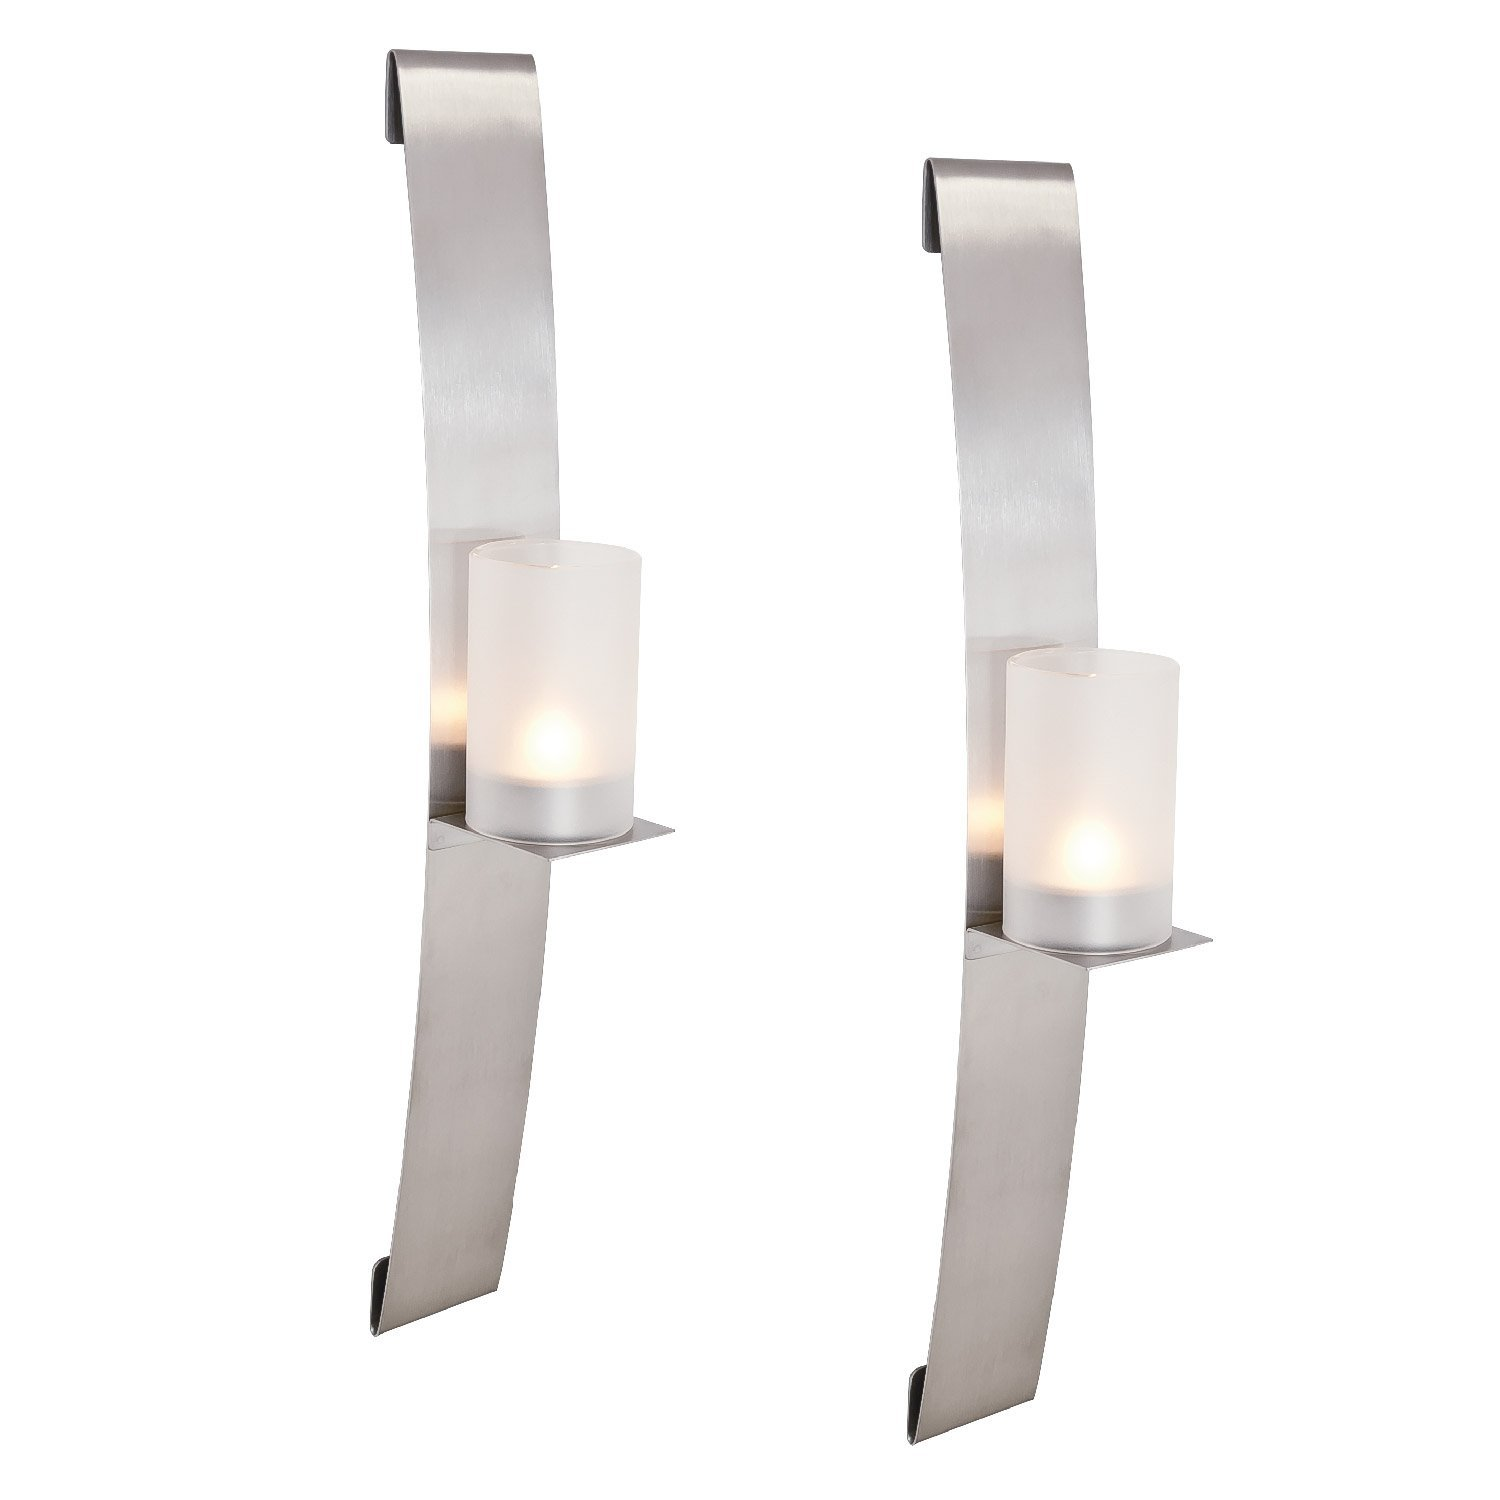 bremermann® Candle Holders